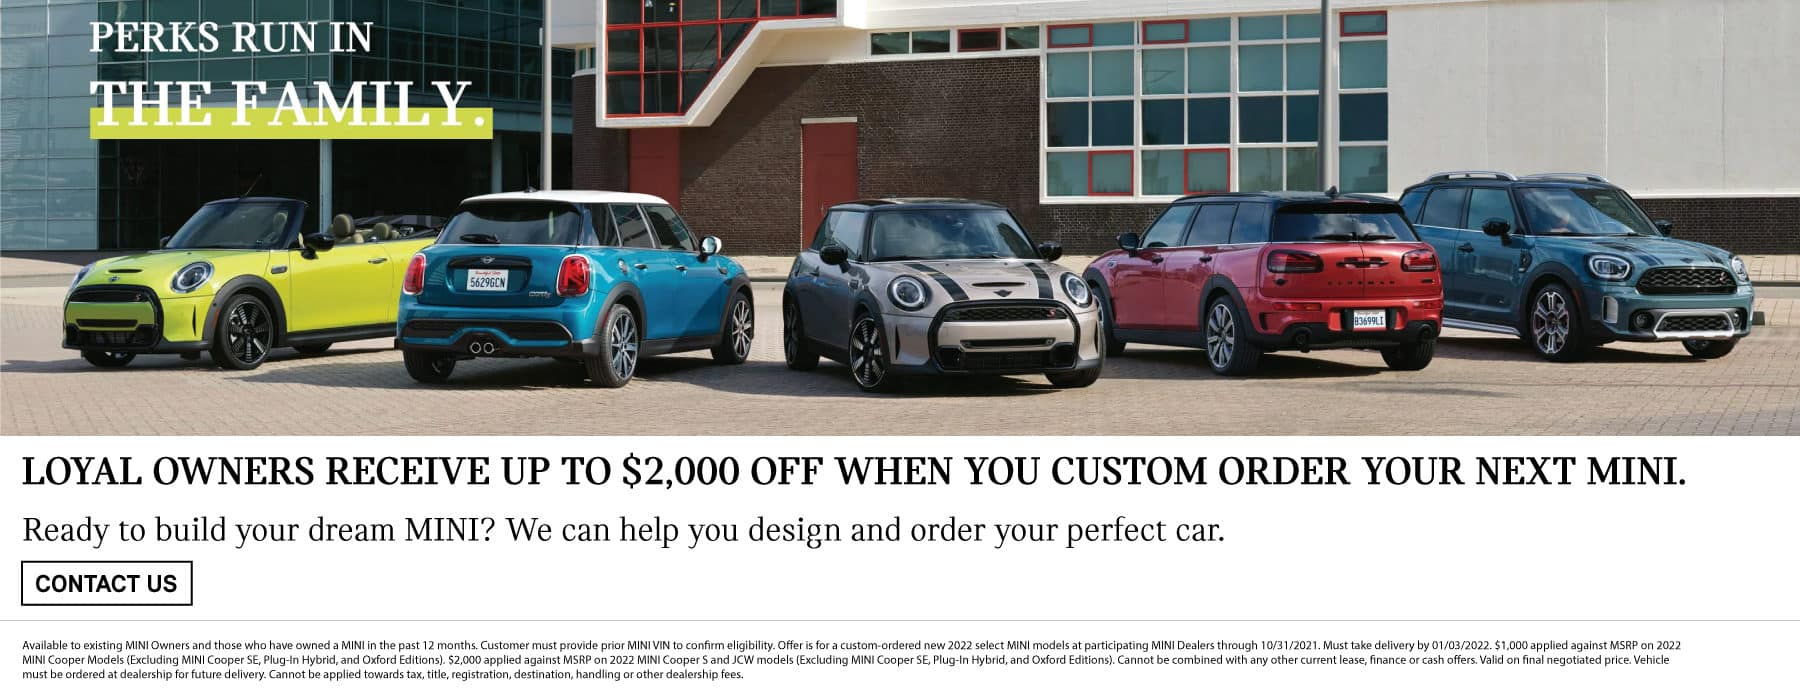 loyal owners receive up to $2,000 off when you custom order your next MINI. Ready to build your dream MINI? We can help you design and order your perfect car. See dealer for details. Click to contact us. Image shows a family of MINI vehicles parked next to each other.